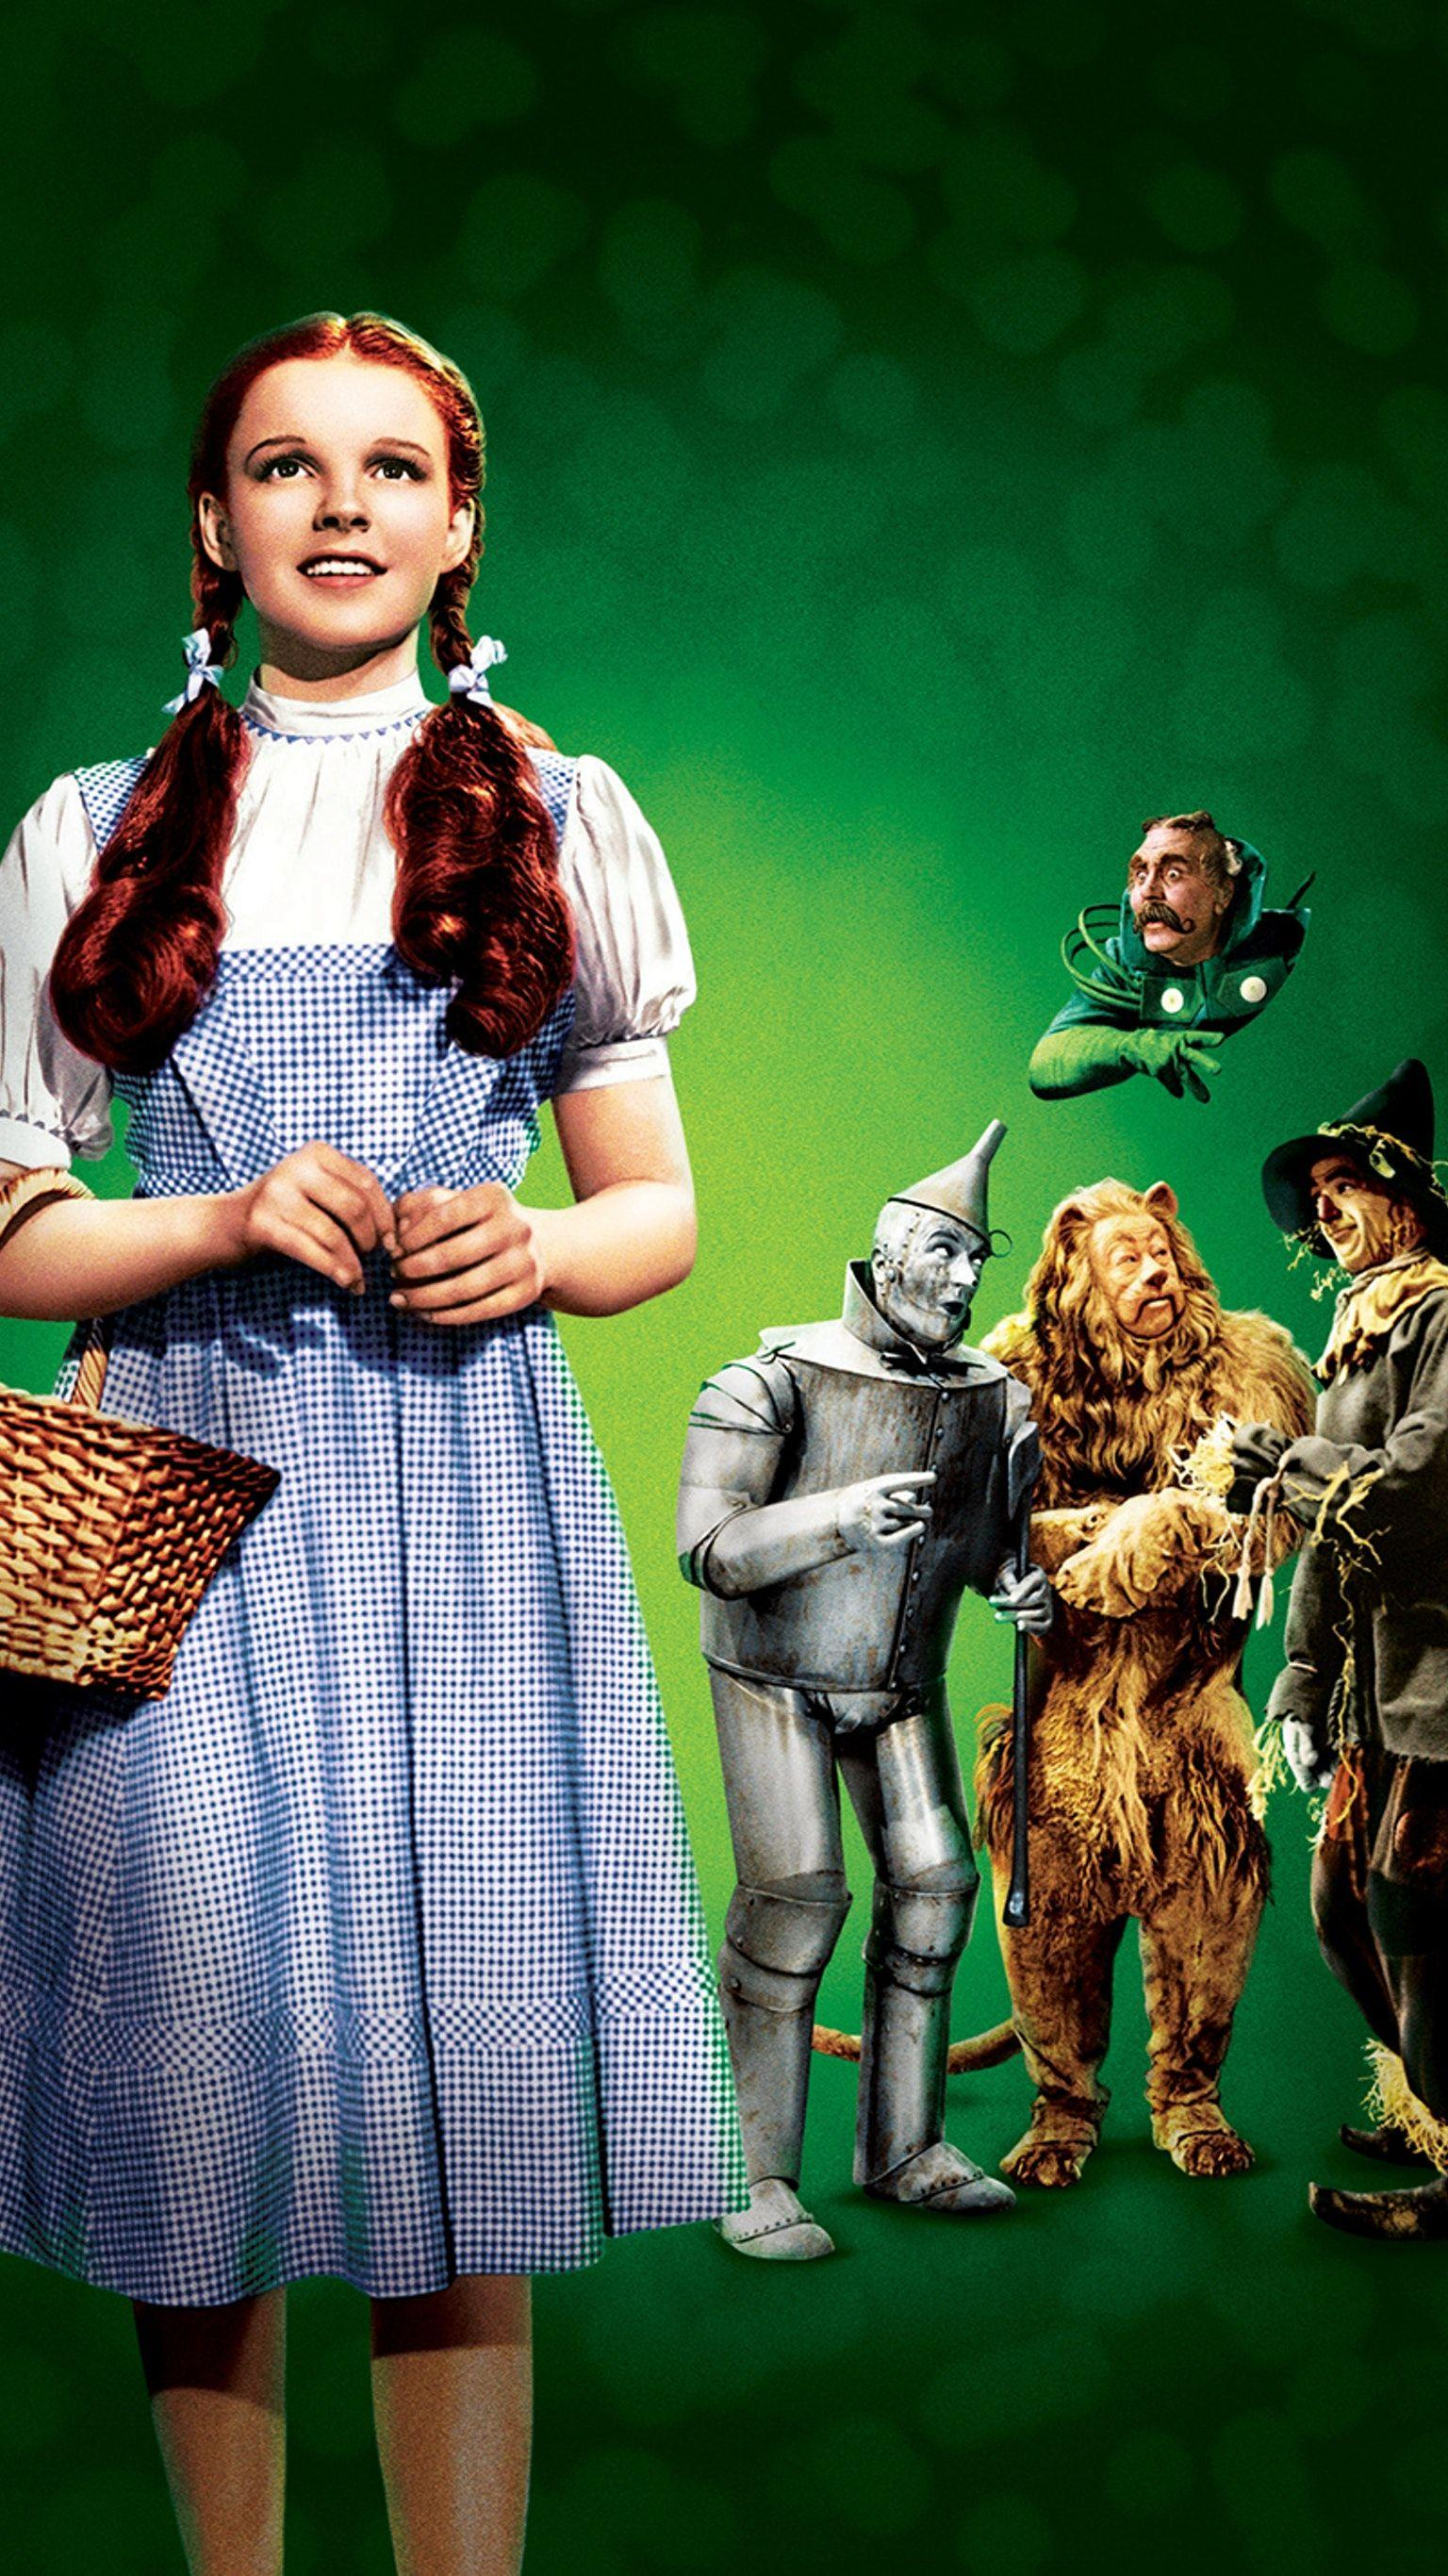 the wizaed of oz The wizard of oz was a 1902 musical extravaganza based on the wonderful wizard of oz by l frank baum, which was originally published in 1900.